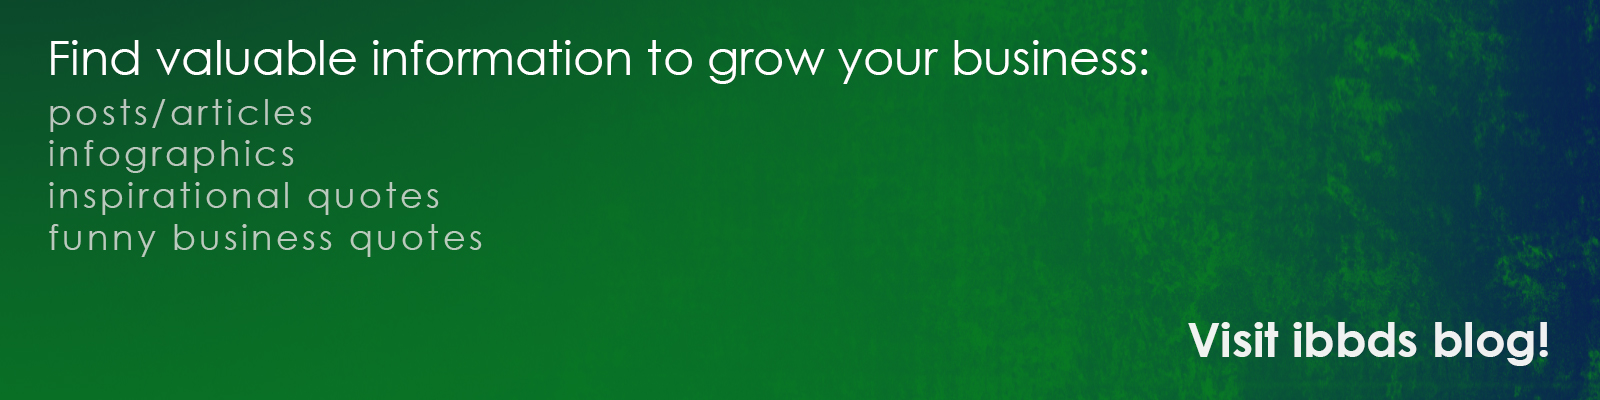 Find valuable information to grow your business